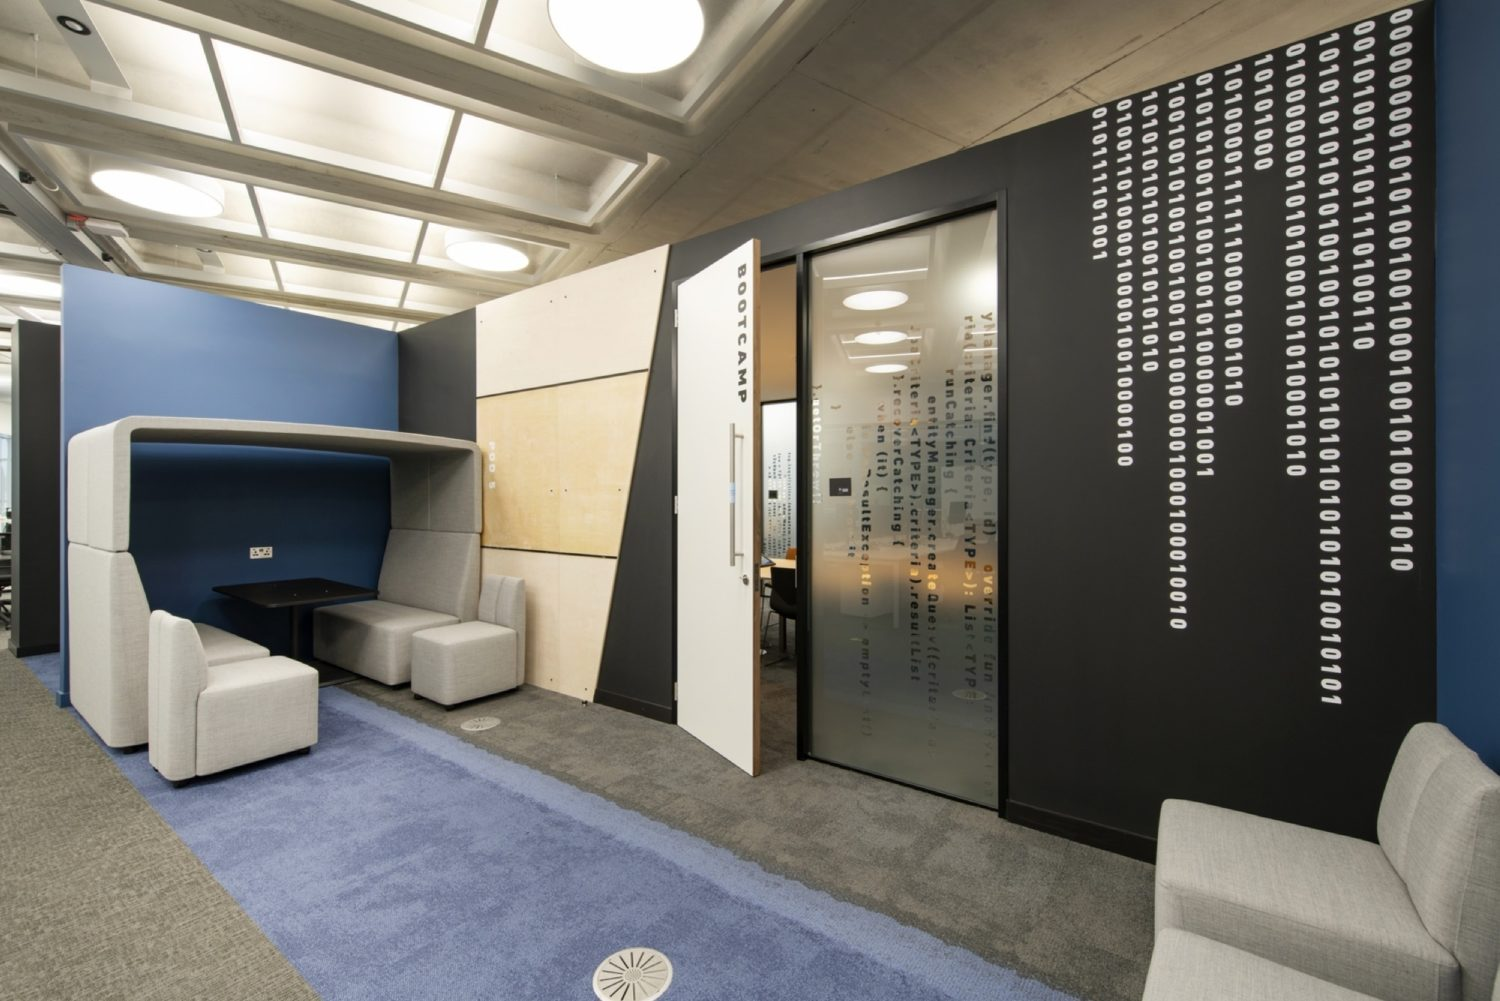 Metapack office fit out